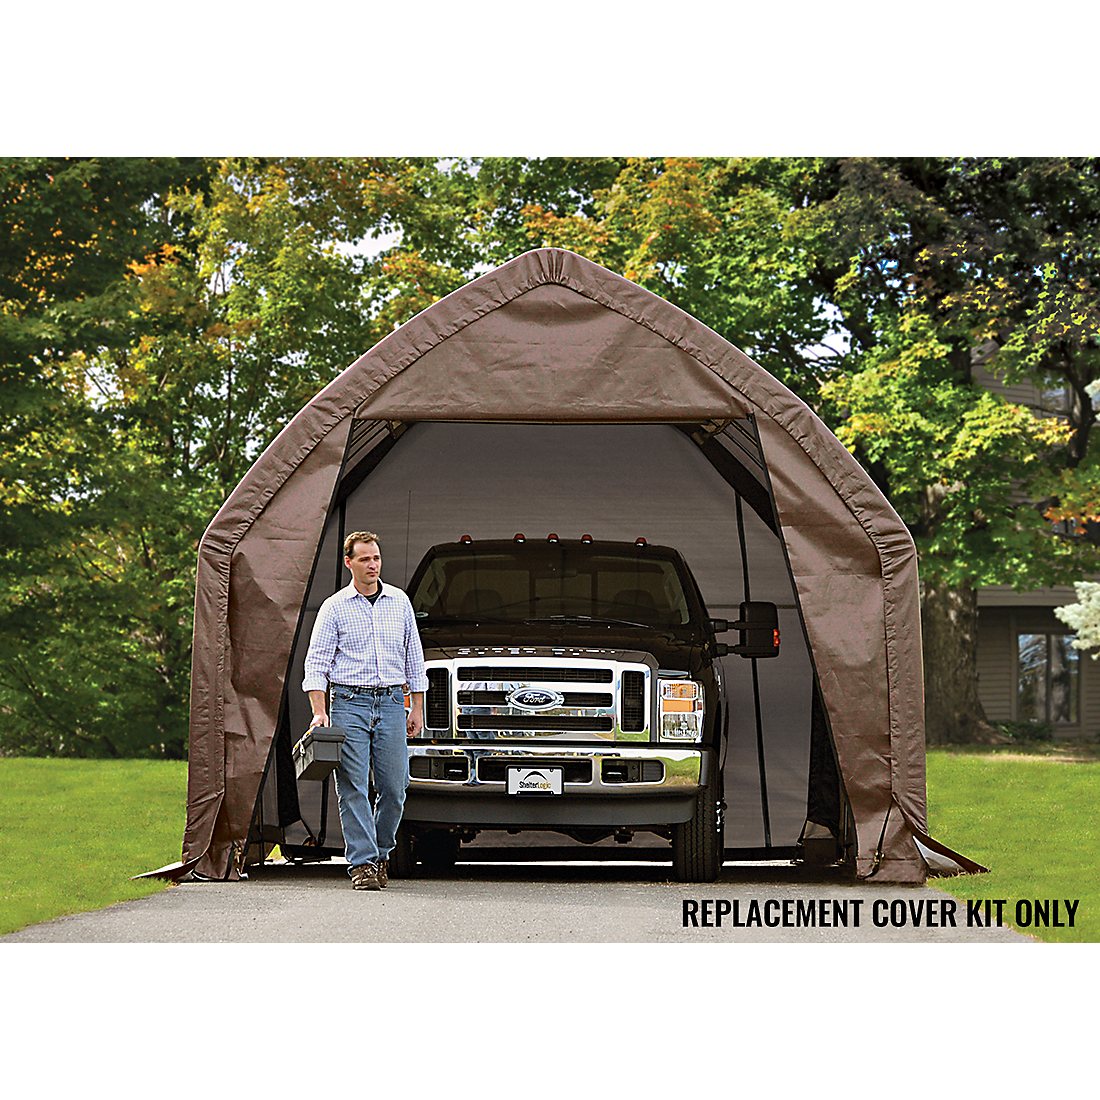 Instant Garage Replacement Covers : Replacement cover kit for the garage in a box suv truck